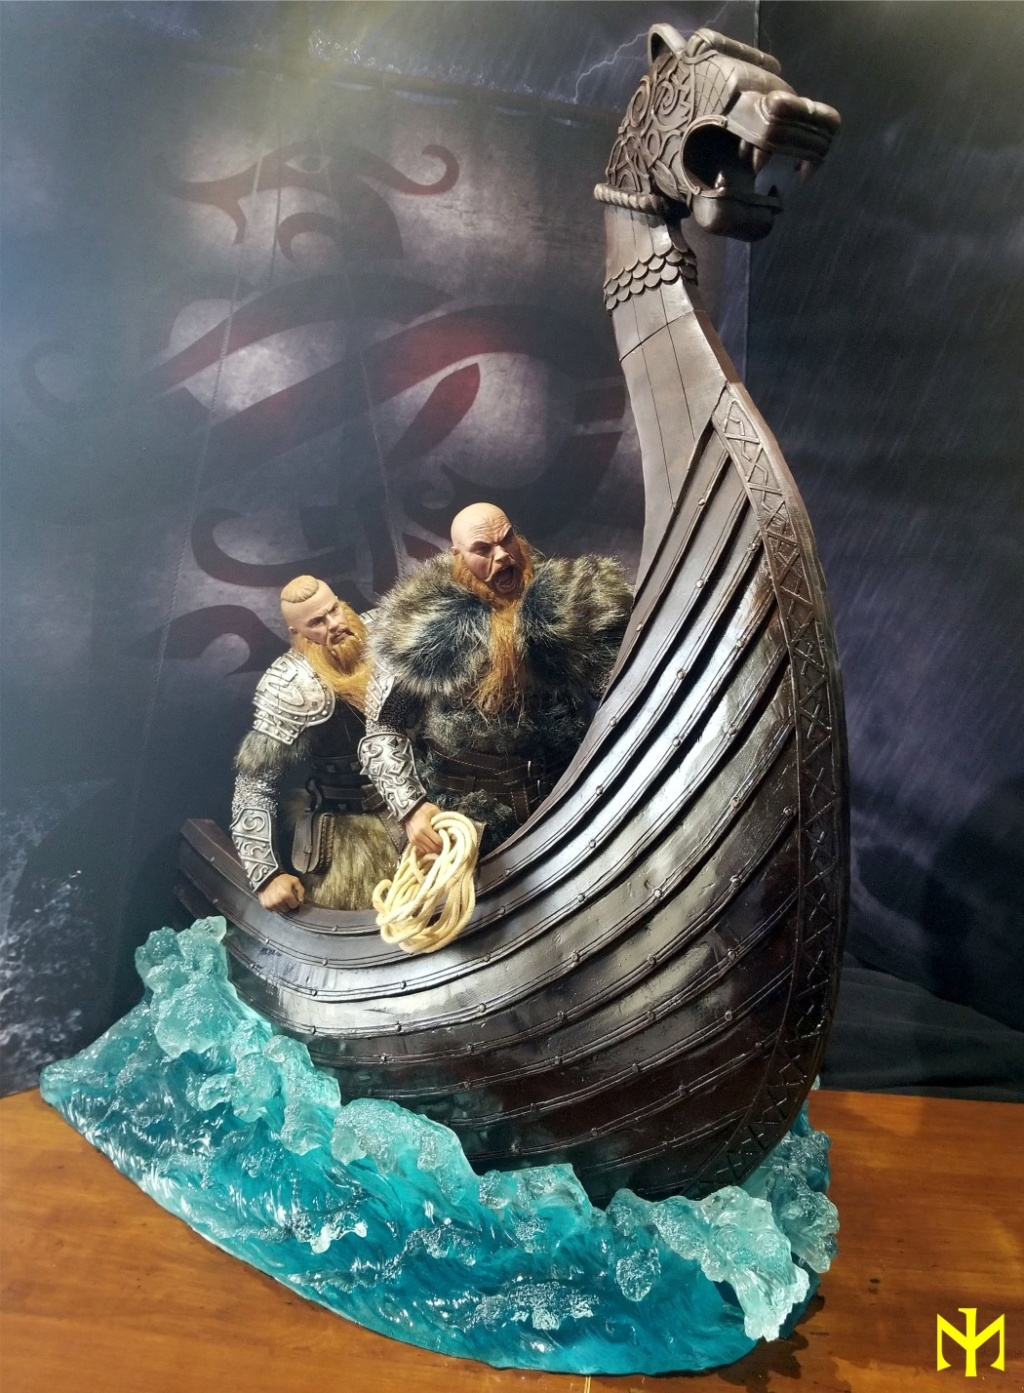 Vikings Vanquisher Viking Ship Diorama Coomodel Review Viking31